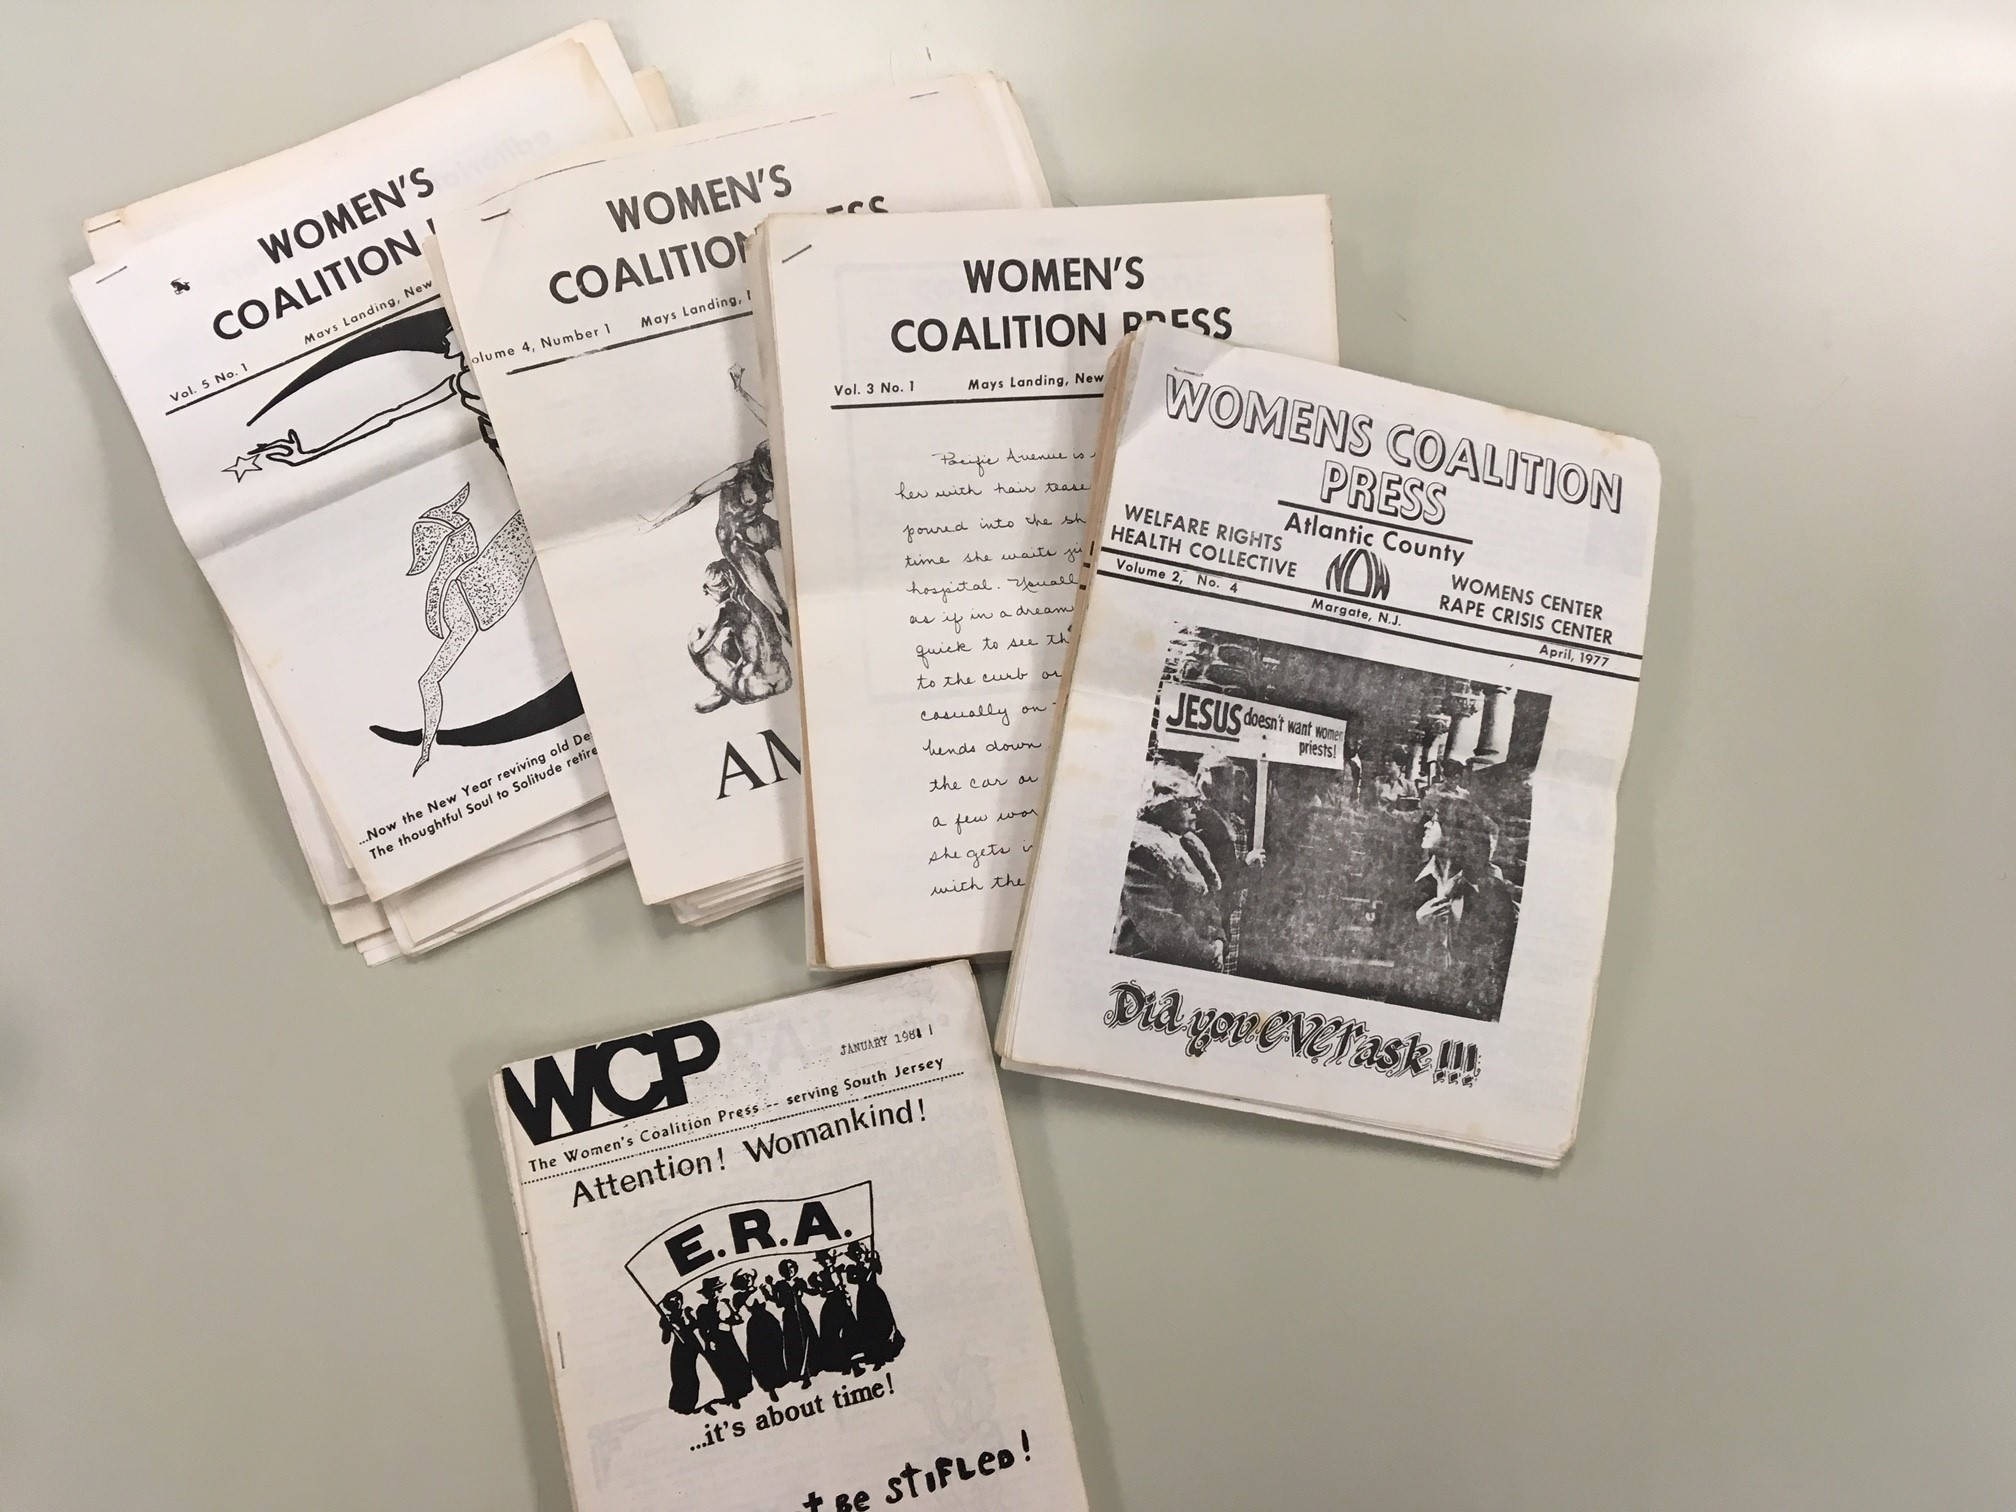 Image of copies of newsletter, Women's Coalition Press, on a table.